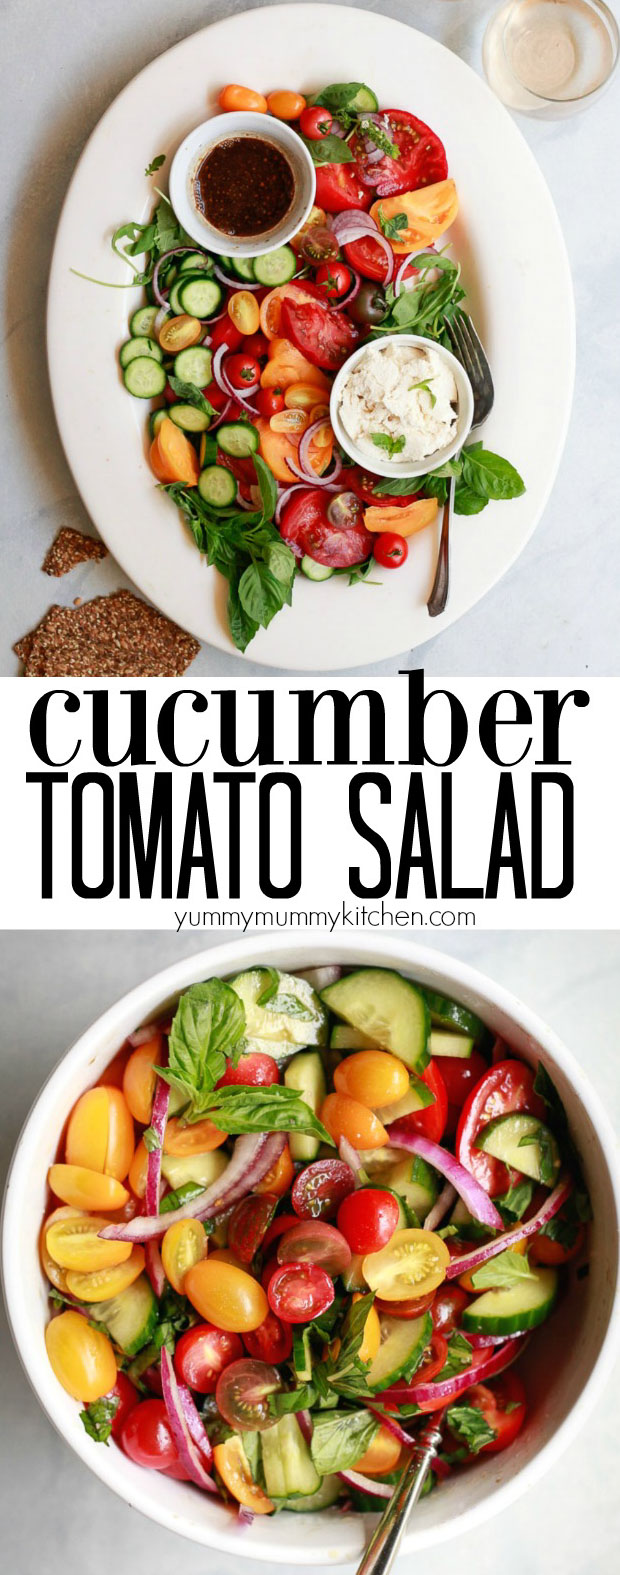 Cucumber, Tomato, Onion Salad with basil and an oil-free balsamic vinaigrette is a beautiful summer salad perfect for Labor Day or any day. This easy fresh heirloom tomato salad is vegan and gluten free. It makes a delicious side dish or salad for parties.